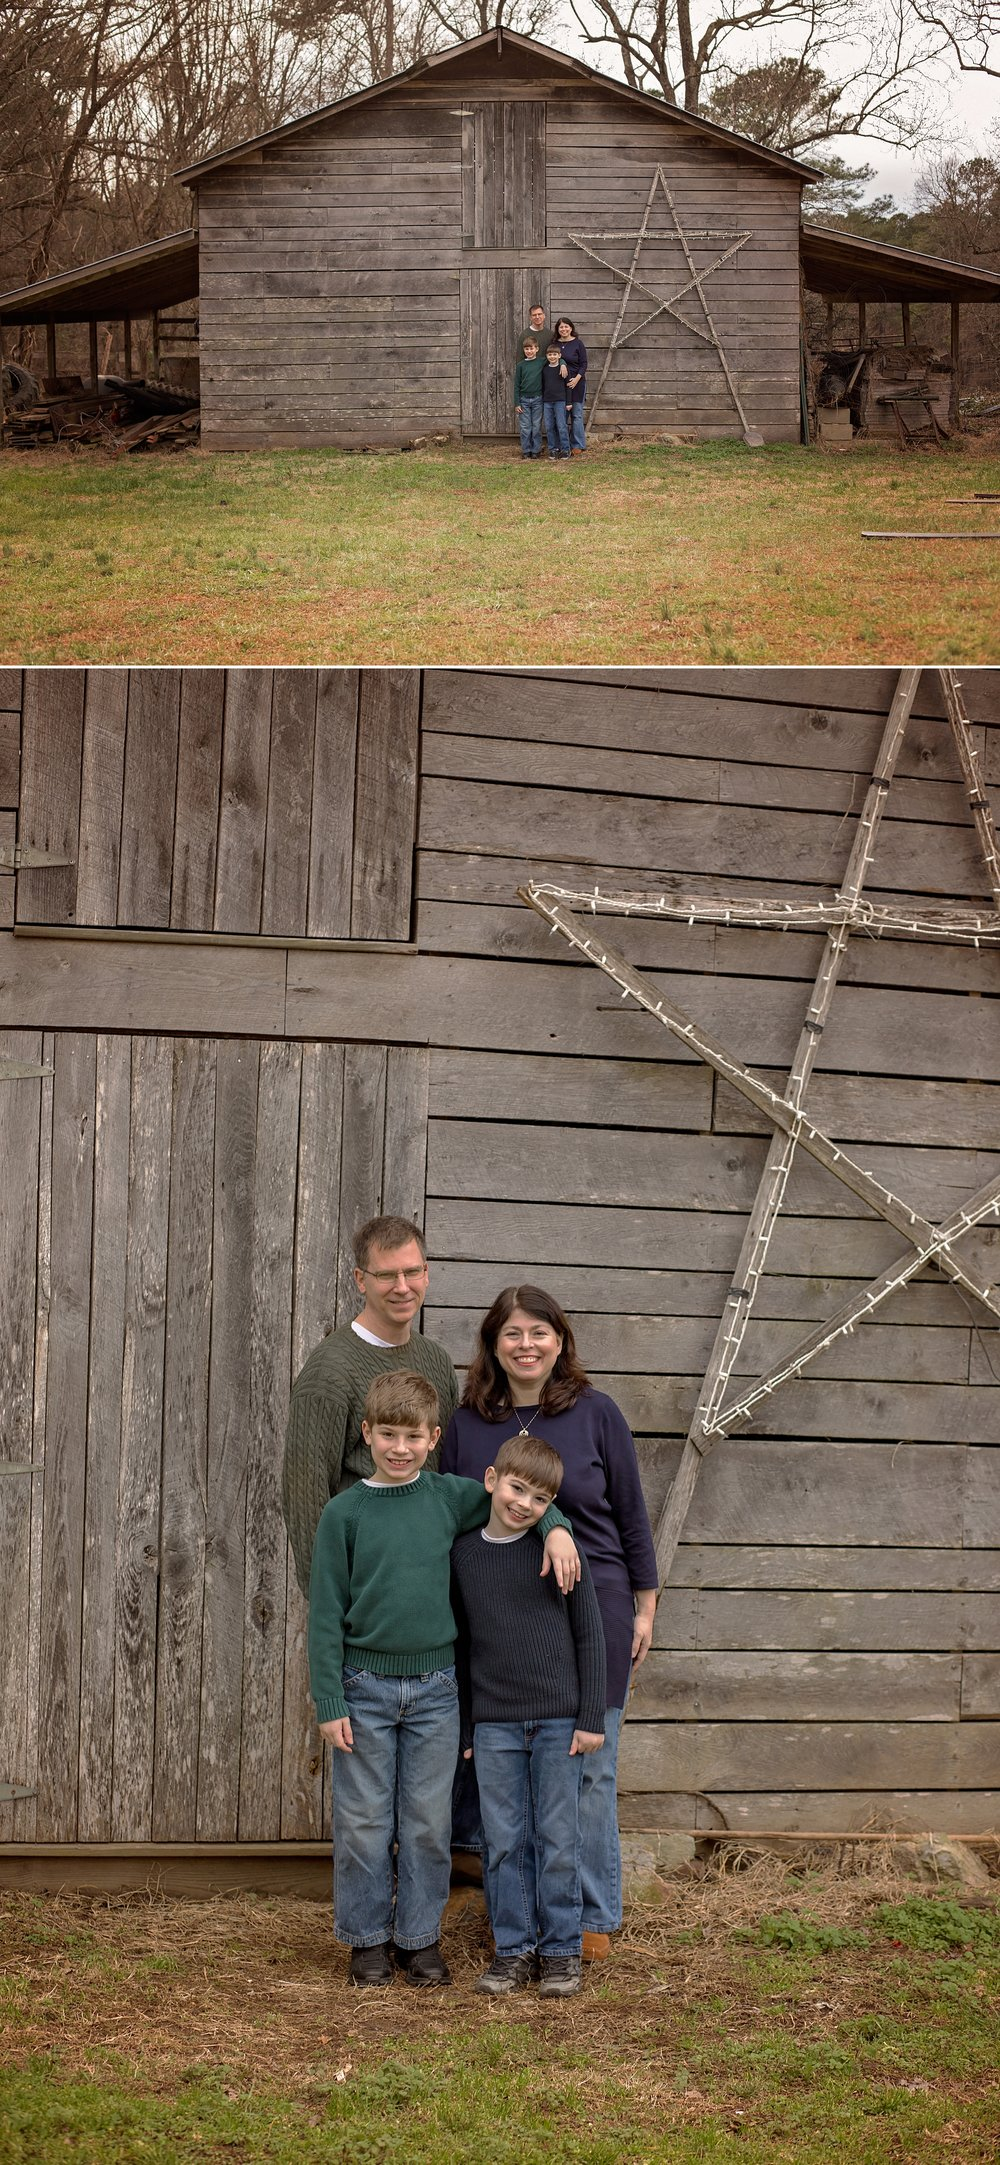 Sanford NC family gathers in front of a barn during session.